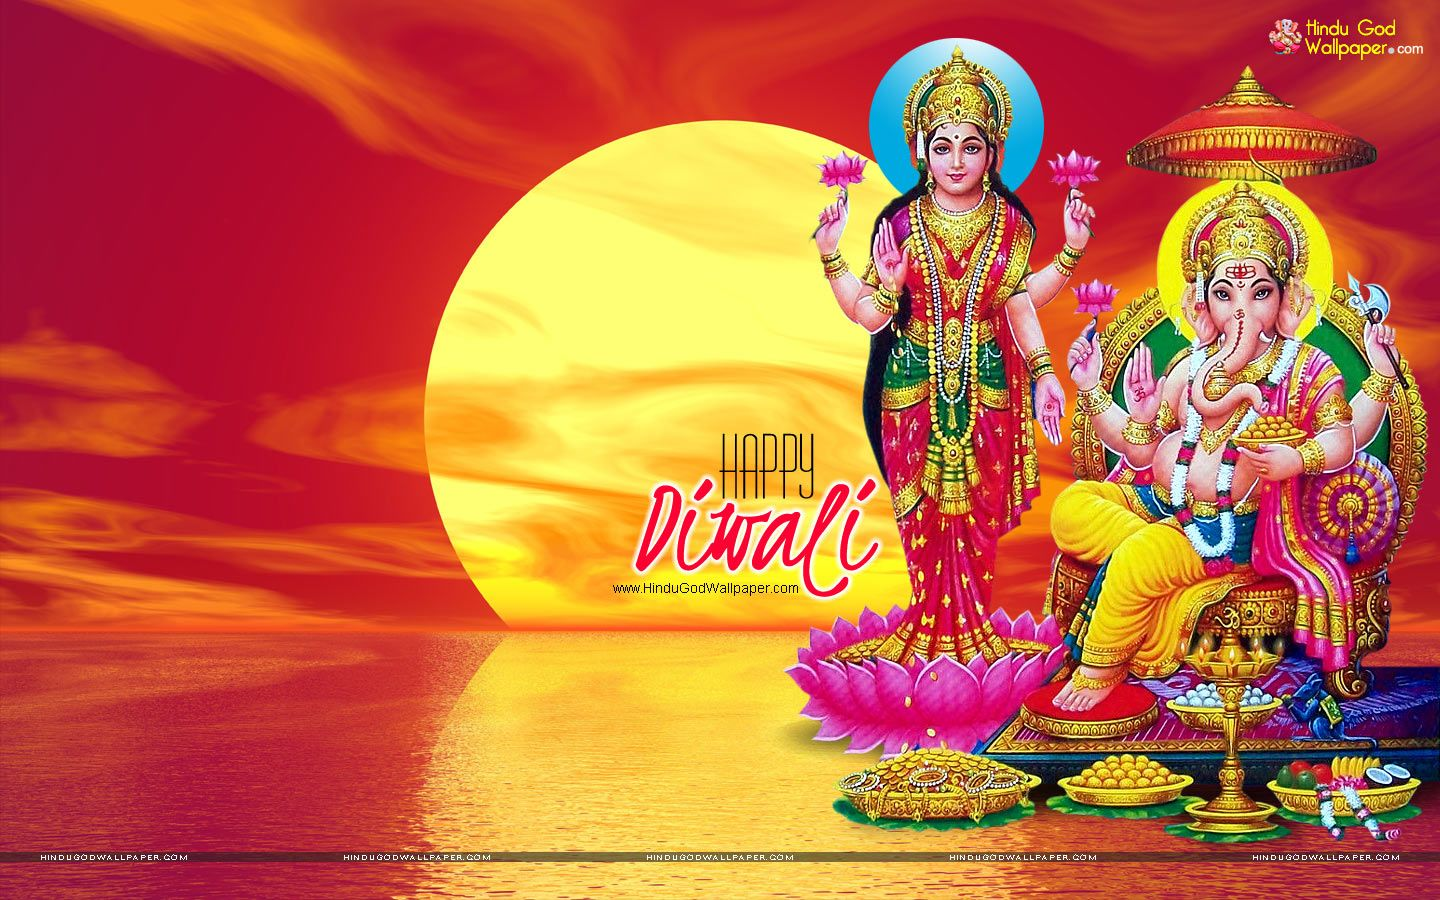 Laxmi Ganesh Wallpapers Hd Full Size Download Ganesh Wallpaper Wallpaper Ganesha Art